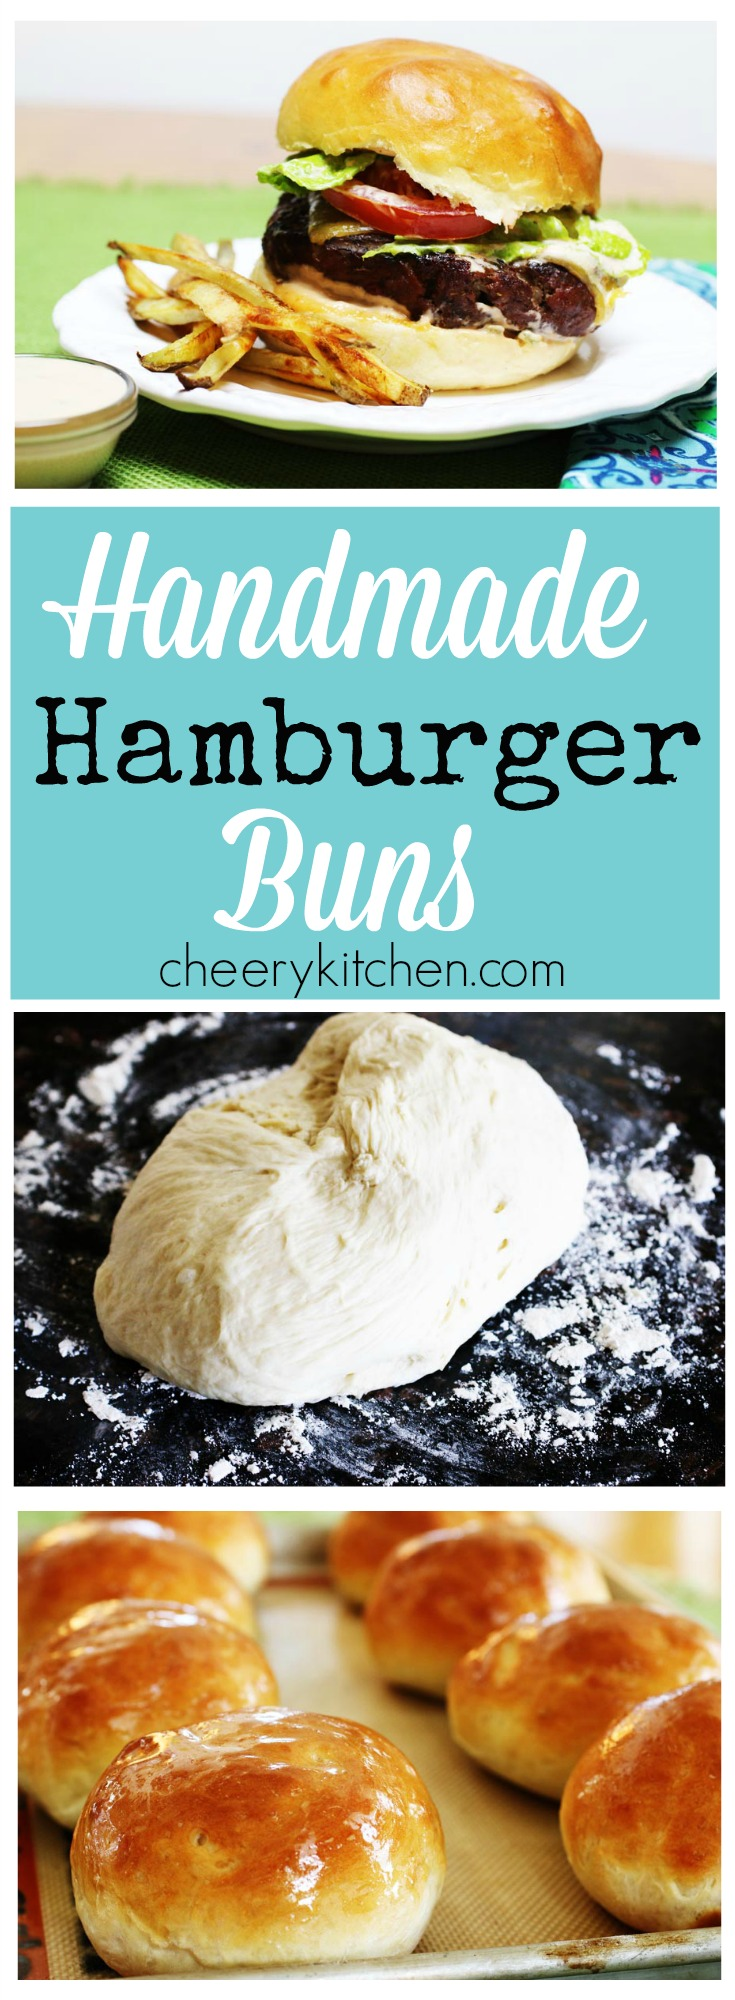 Kick your grilled burgers up a notch with Homemade Hamburger buns that are soft and chewy, so much better than what comes out of a plastic bag!